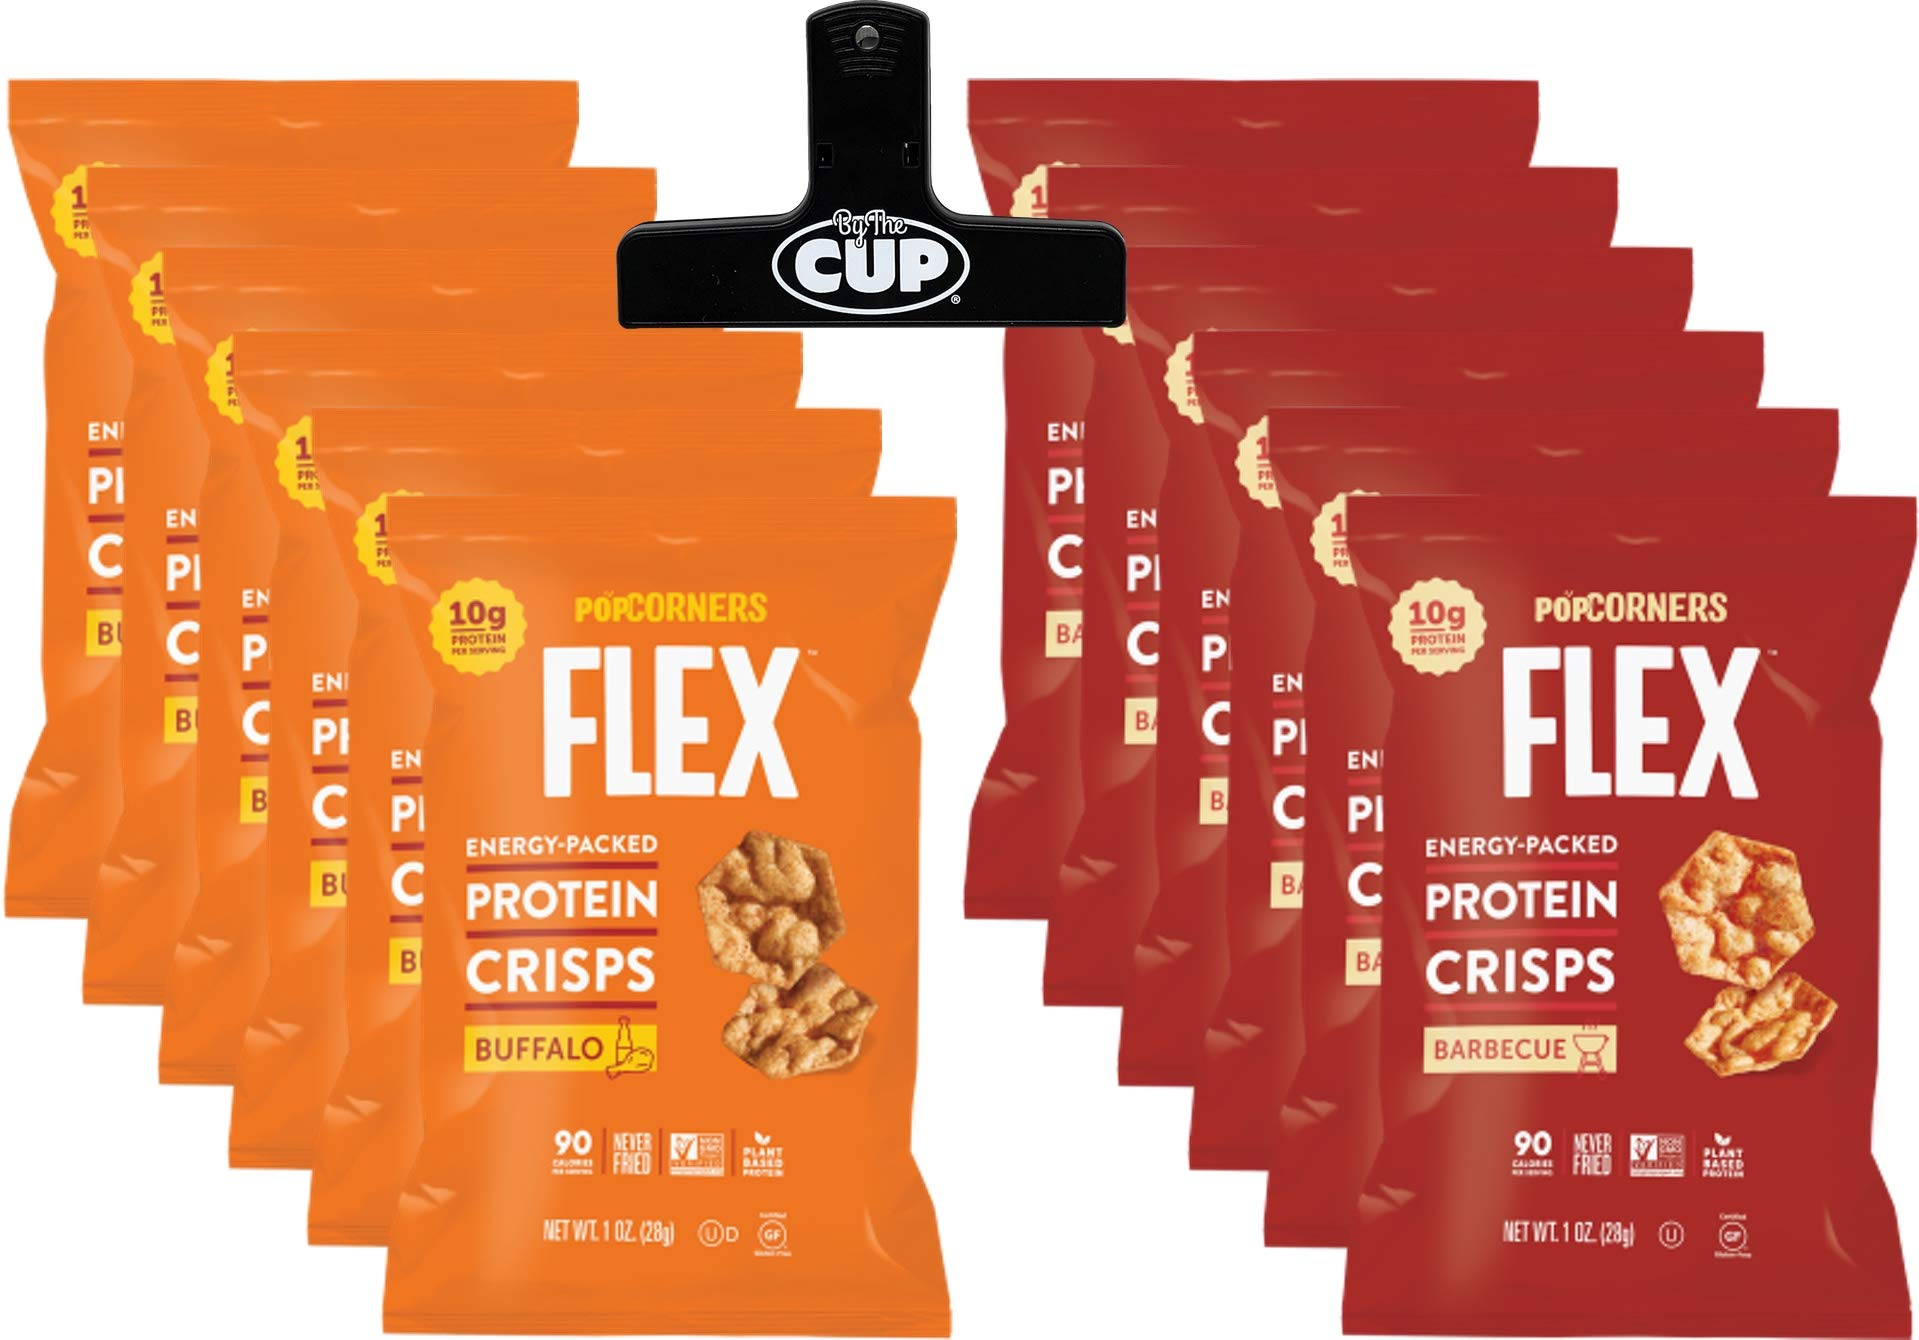 PopCorners Flex Popped Protein Crisps Snack Variety Pack, 6 of Each Buffalo and barbecue Flavored 1.0 Ounce Bags (12 Count) with By The Cup Chip Clip by By The Cup